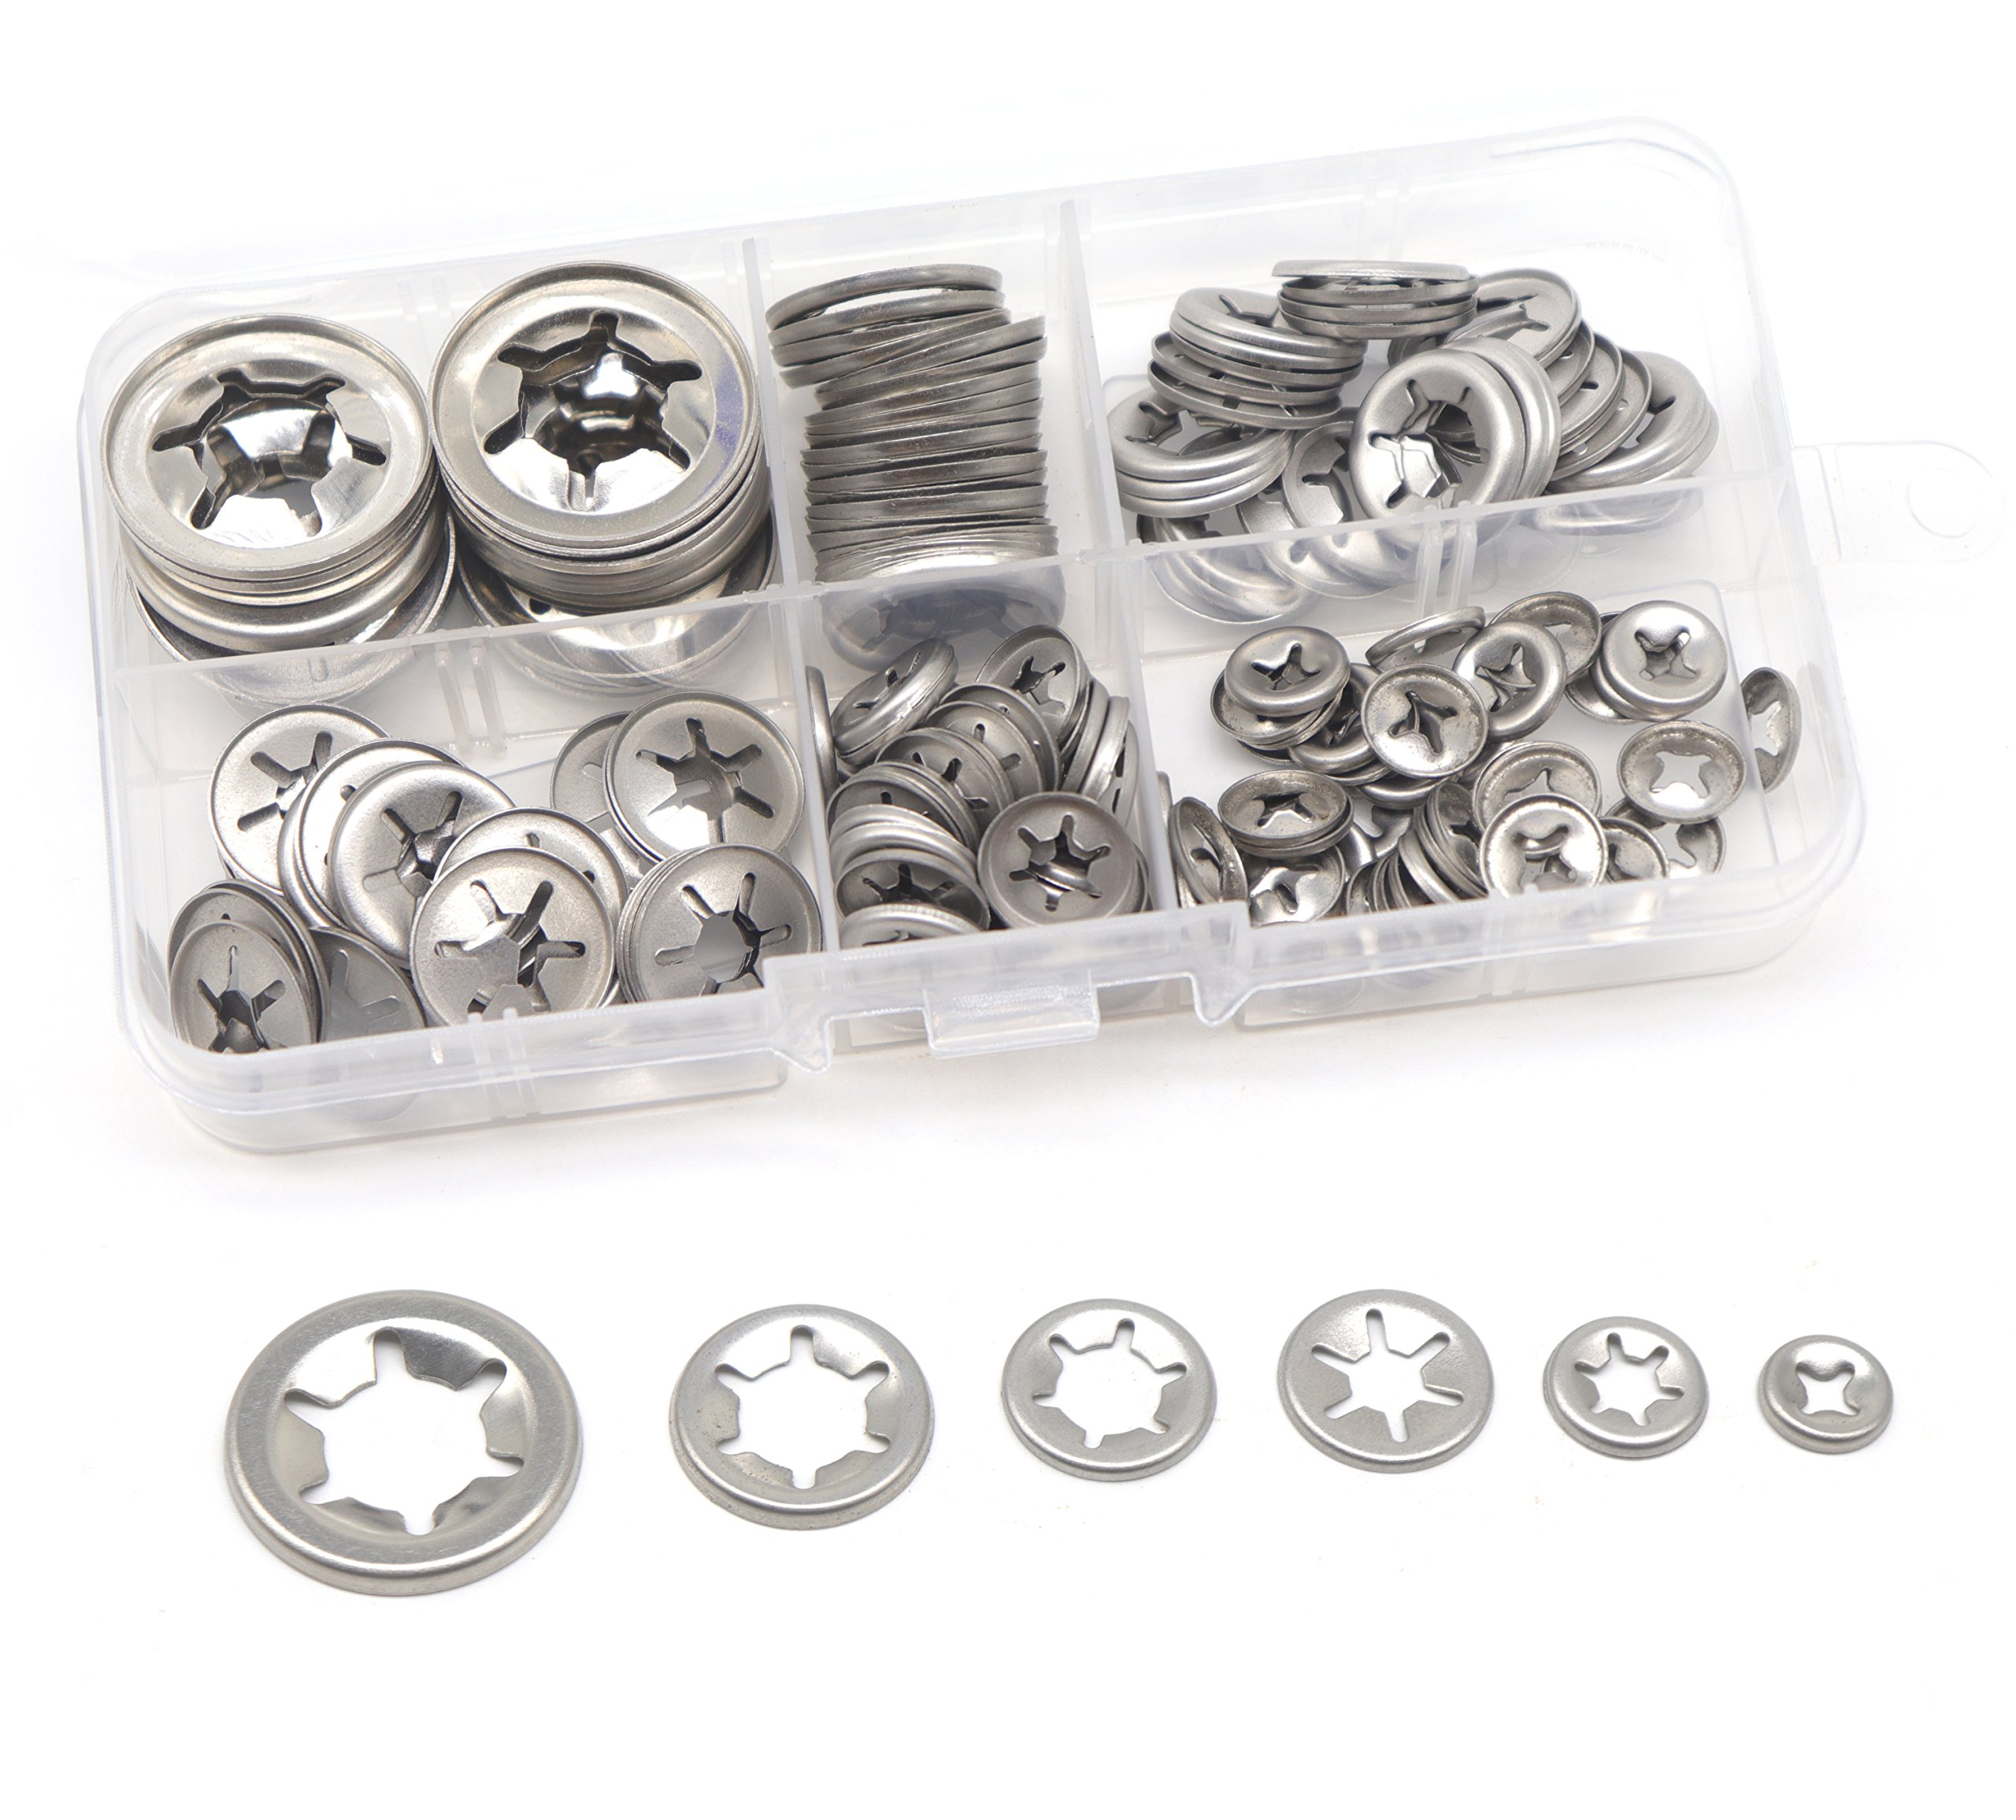 cSeao 150pcs 304 Stainless Steel Starlock Internal Tooth Push On Locking Washers Assortment Kit, M3/ M4/ M5/ M6/ M8/ M10/ M12